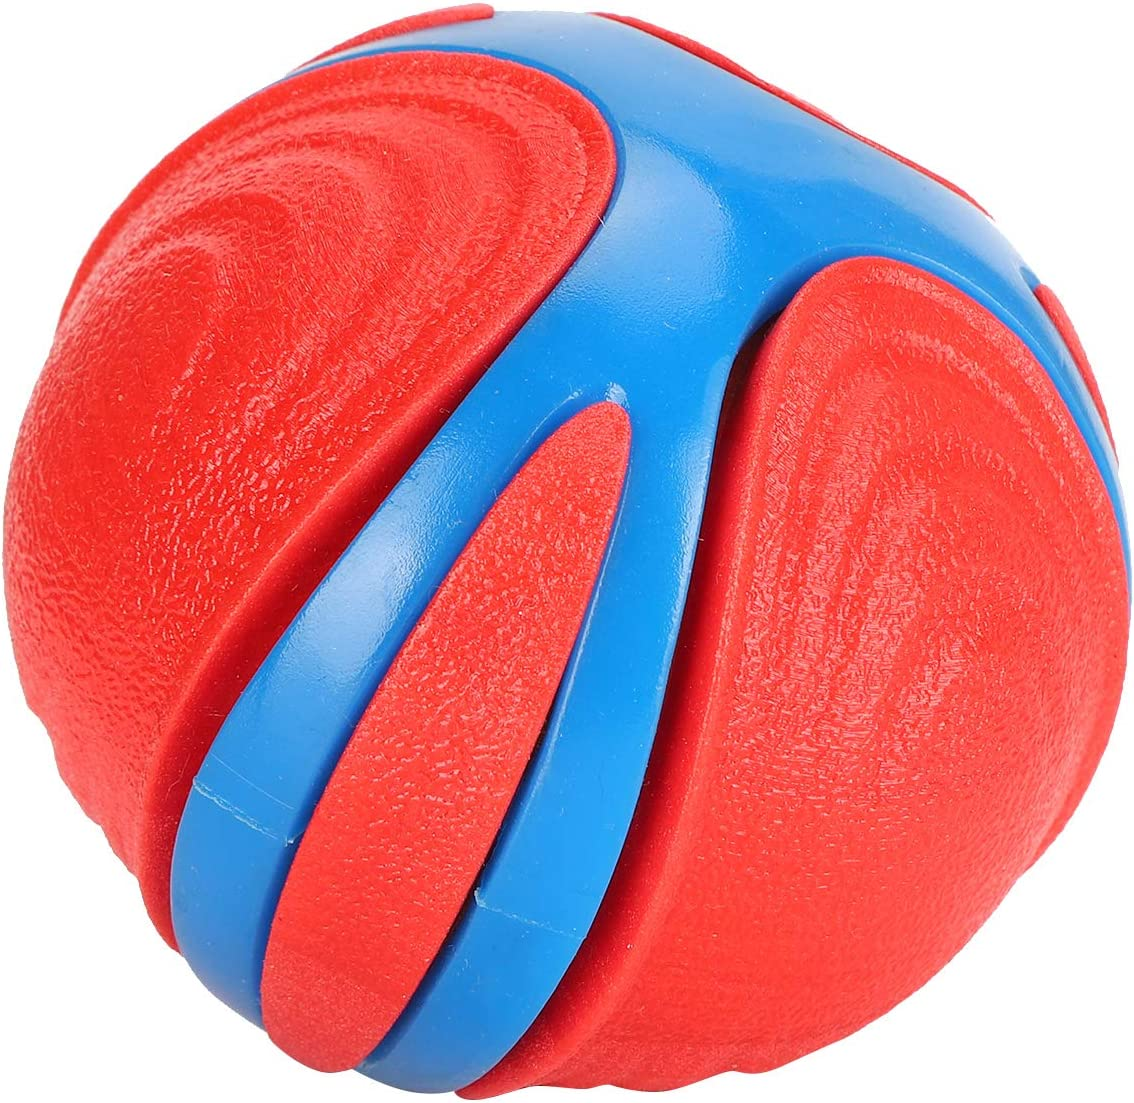 Max 45% OFF Garsentx Dog Chew Balls Bite Toy Ball Bit Solid TPR Dogs for Classic Pet